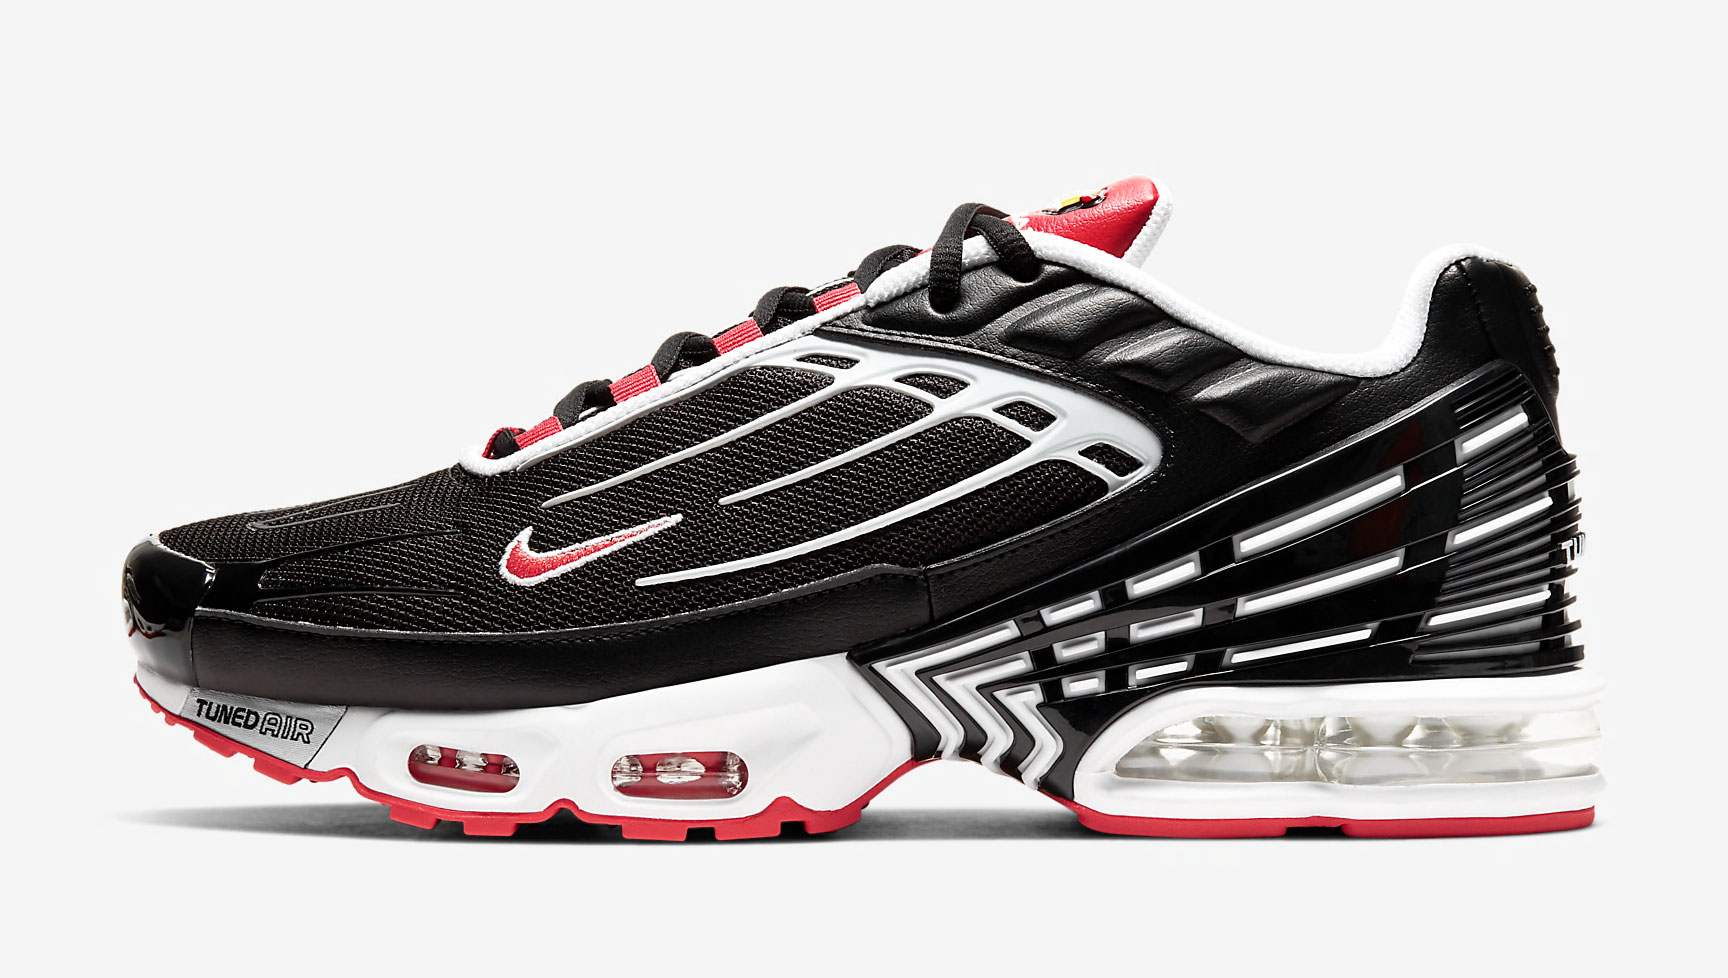 nike-air-max-plus-3-black-white-track-red-release-date